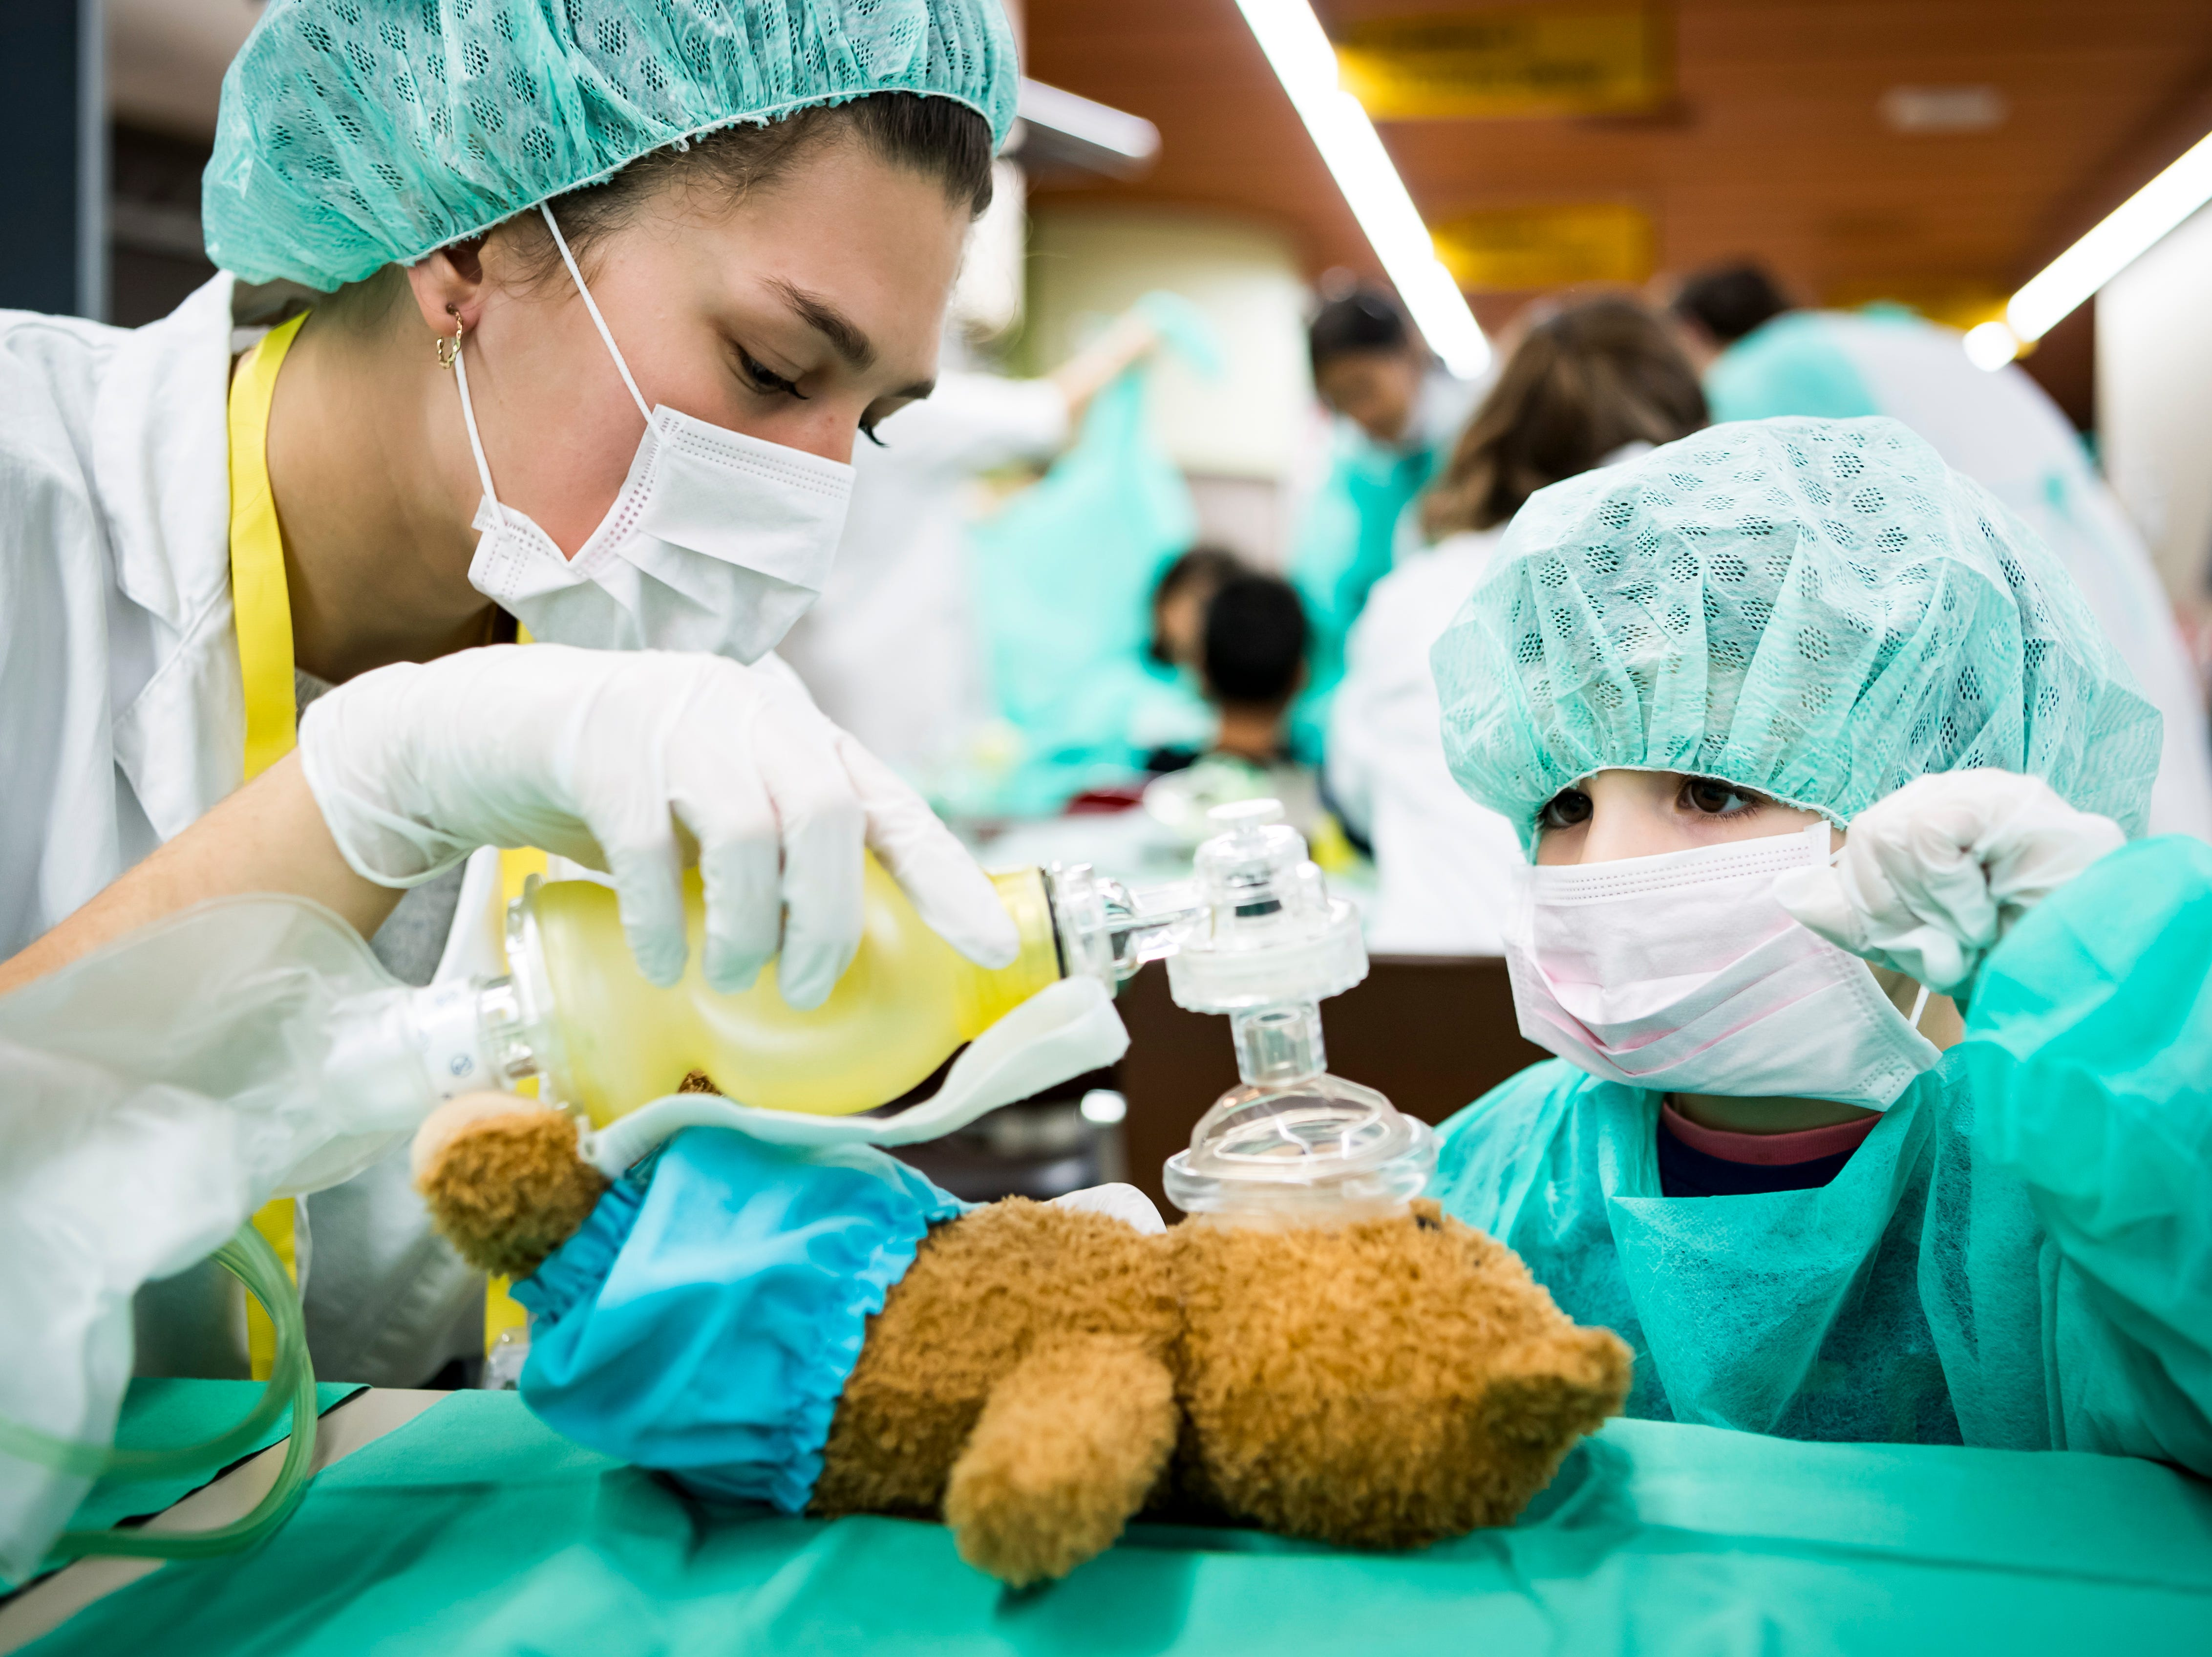 """A child cares for a teddy bear with the help of a medical student at the 11th edition of the """"Teddy Bear Hospital"""" at the CHUV hospital in Lausanne, Switzerland on Nov. 18, 2018. Teddy Bear Hospital (TBH) is an international project, whose aim is to reduce childhood anxiety about medical environments, procedures and professionals."""